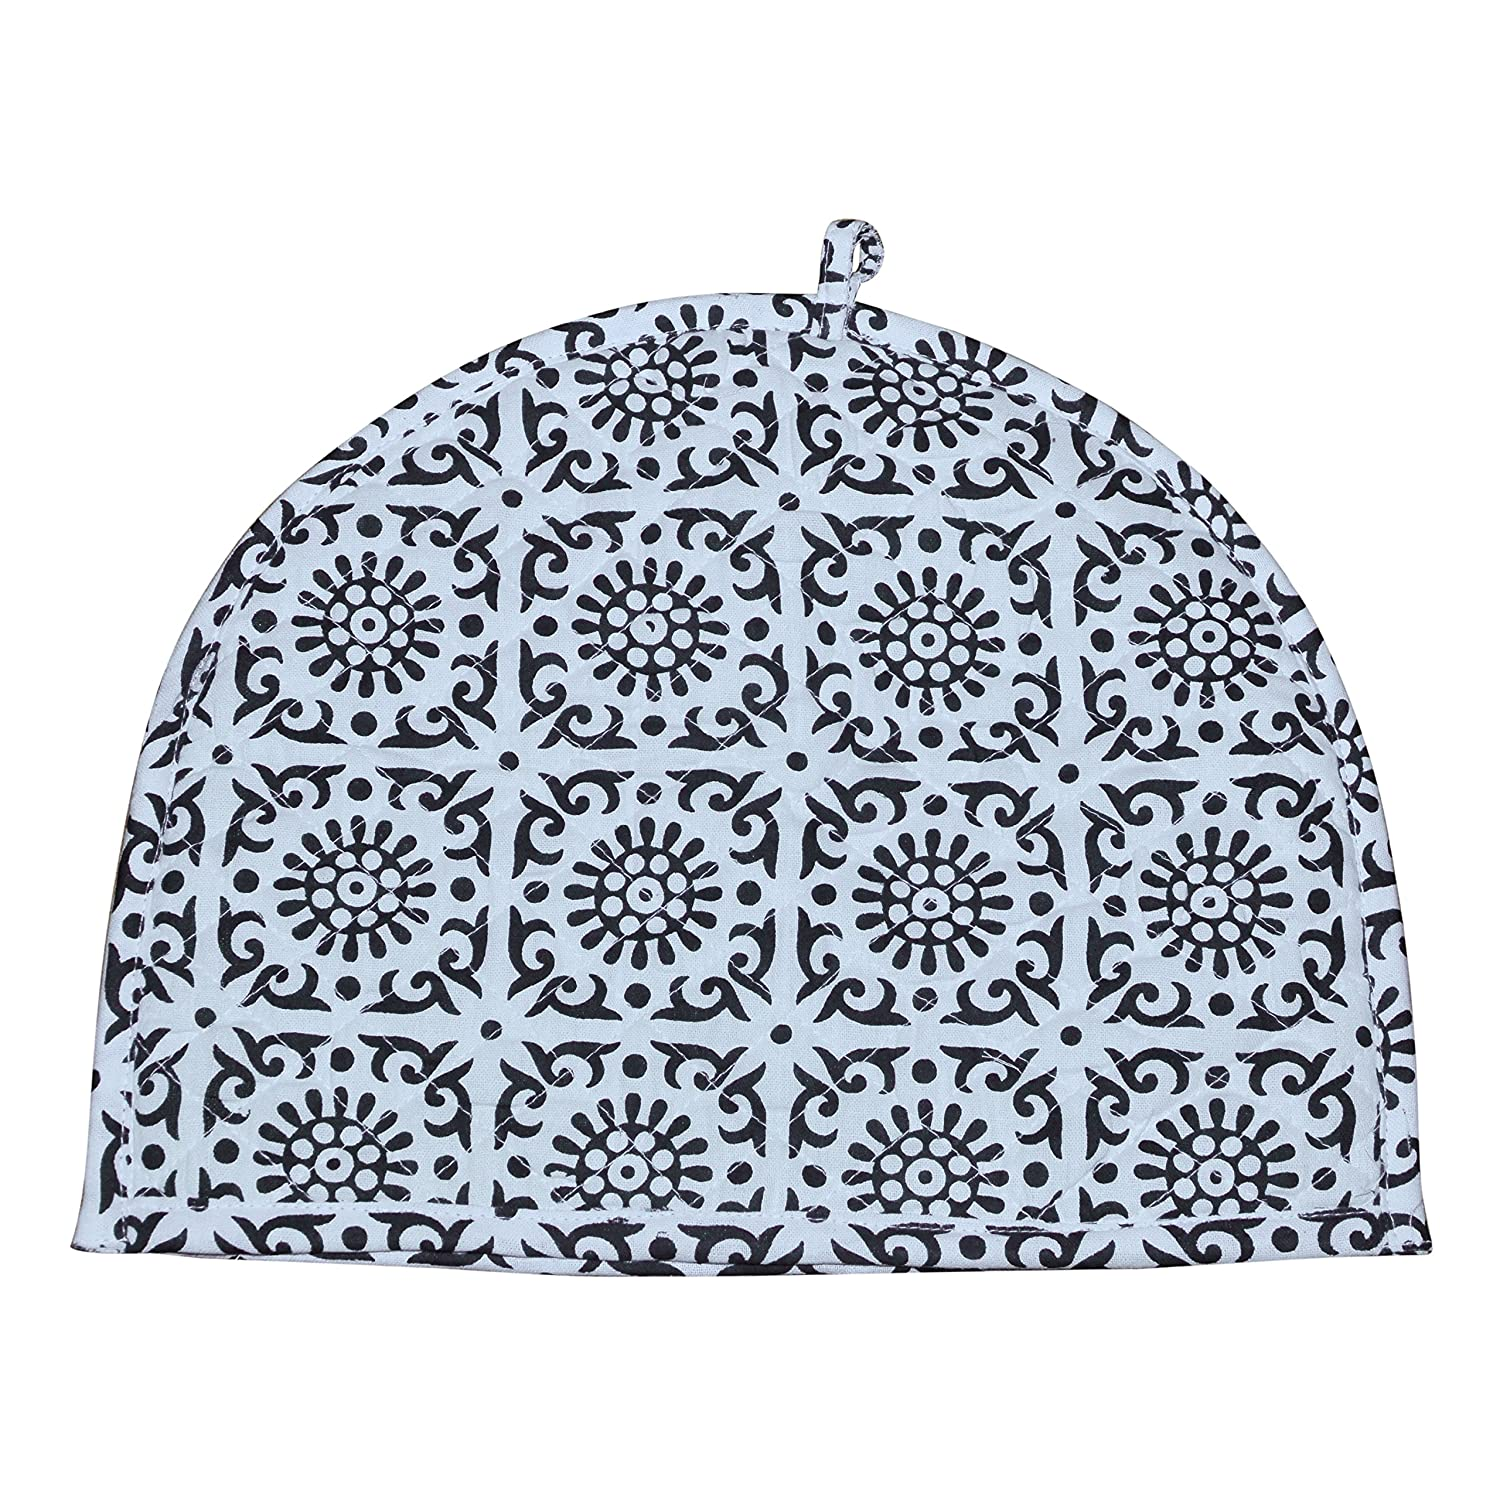 Indian Cotton Printed Tea Cozy Abstract TeaPot Décor Cover Traditional Tea Quilt Floral Warmer Home Decorative Tea Cozies Insulated Gift Ethnic Hand Block Printed Black and White Tea cozy For Teapot Marudhara Fashion TEA00001